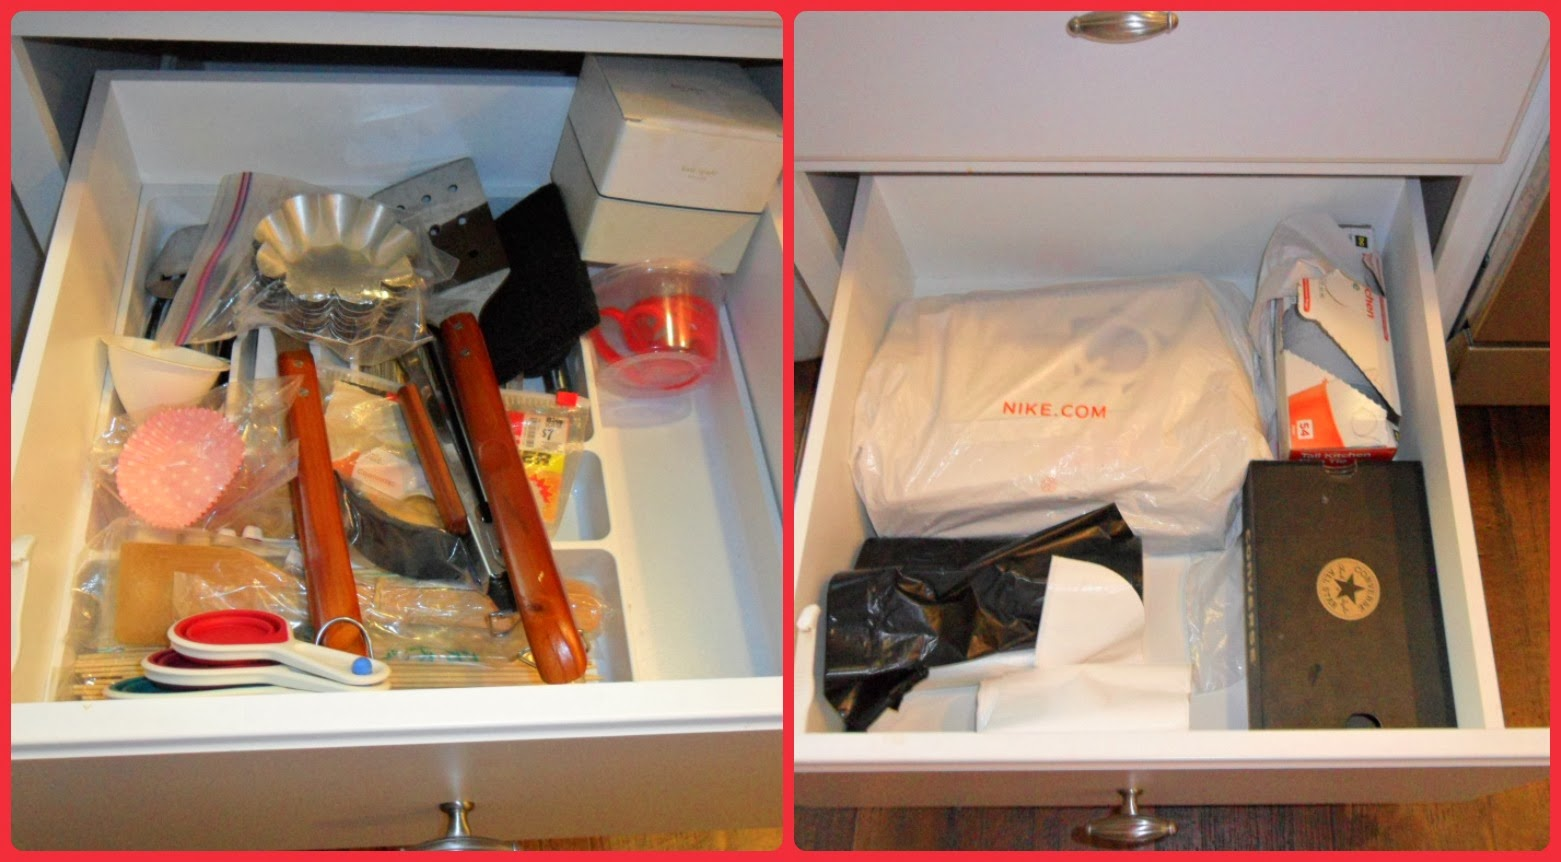 Home for4 sweet home kitchen organizing deep drawers - Organizing desk drawers ...